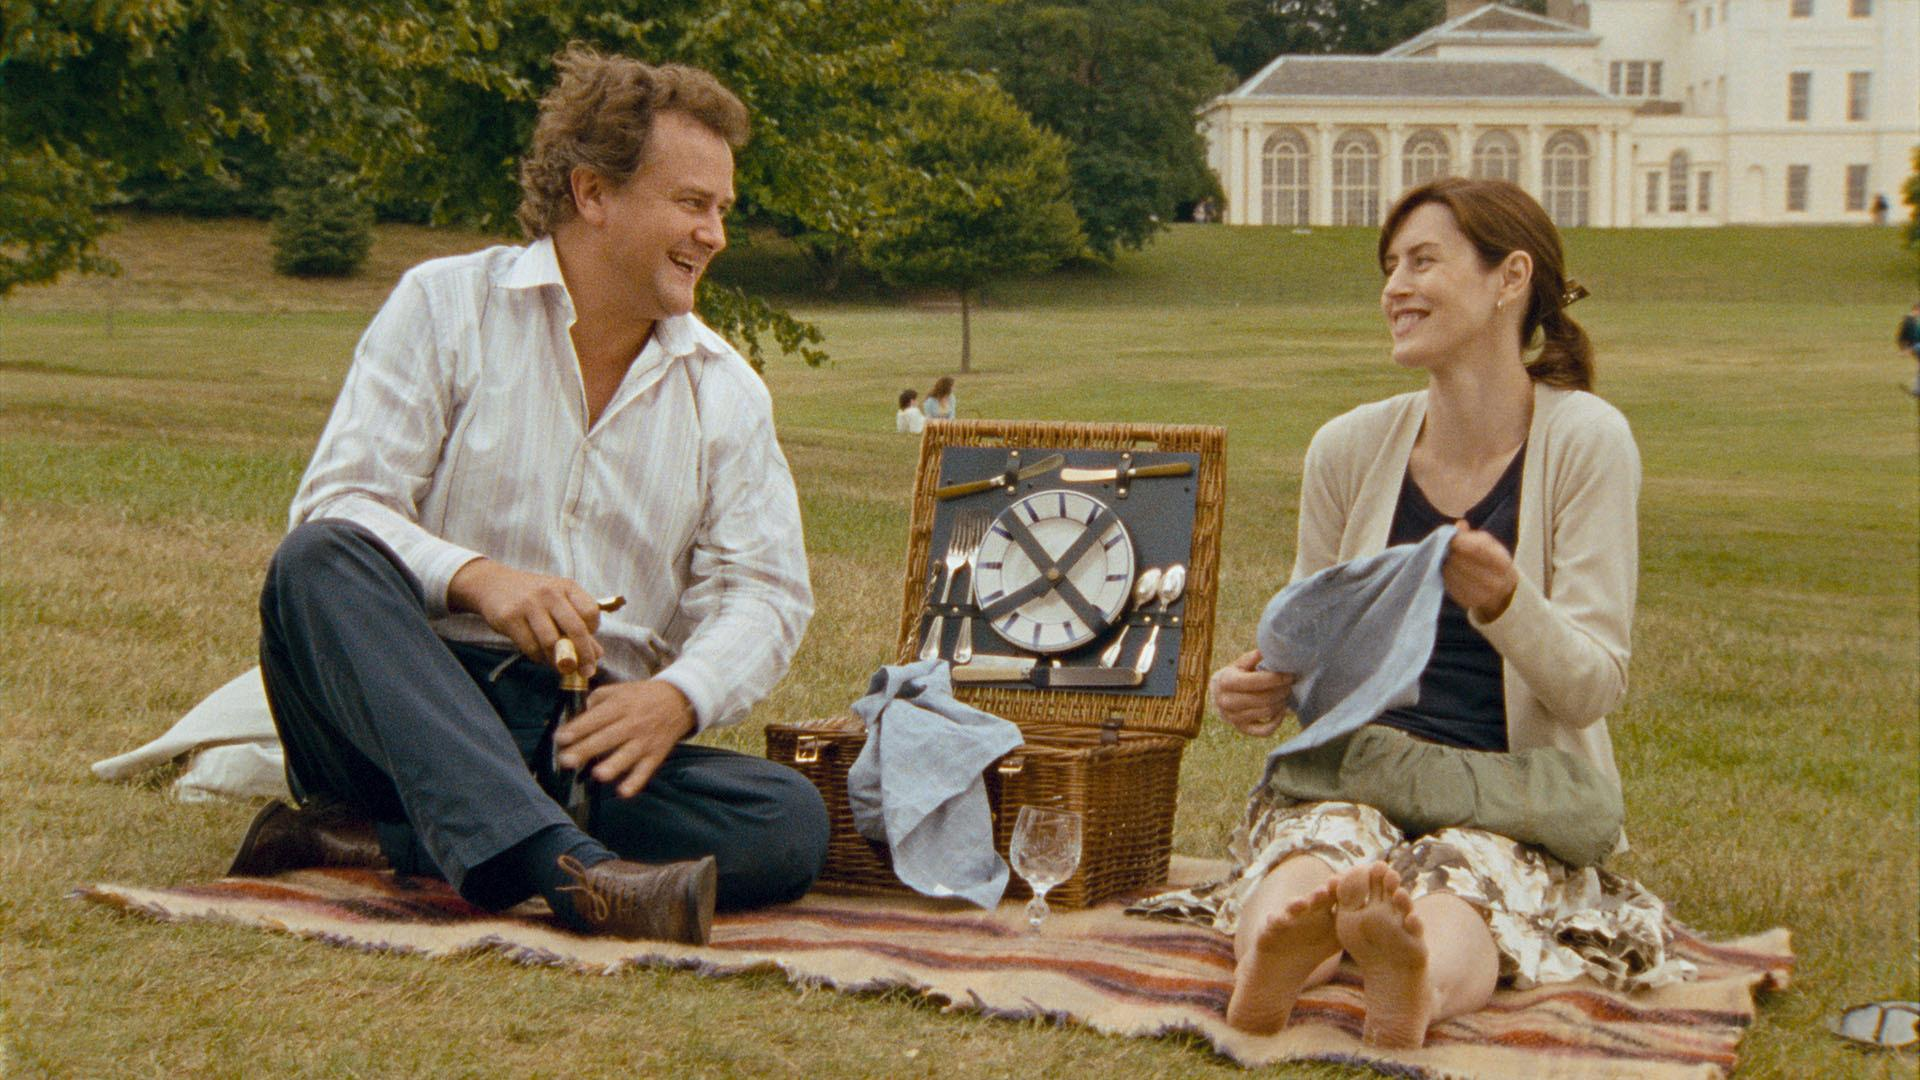 still-of-hugh-bonneville-and-gina-mckee-in-scenes-of-a-sexual-nature-(2006)-large-picture.jpg